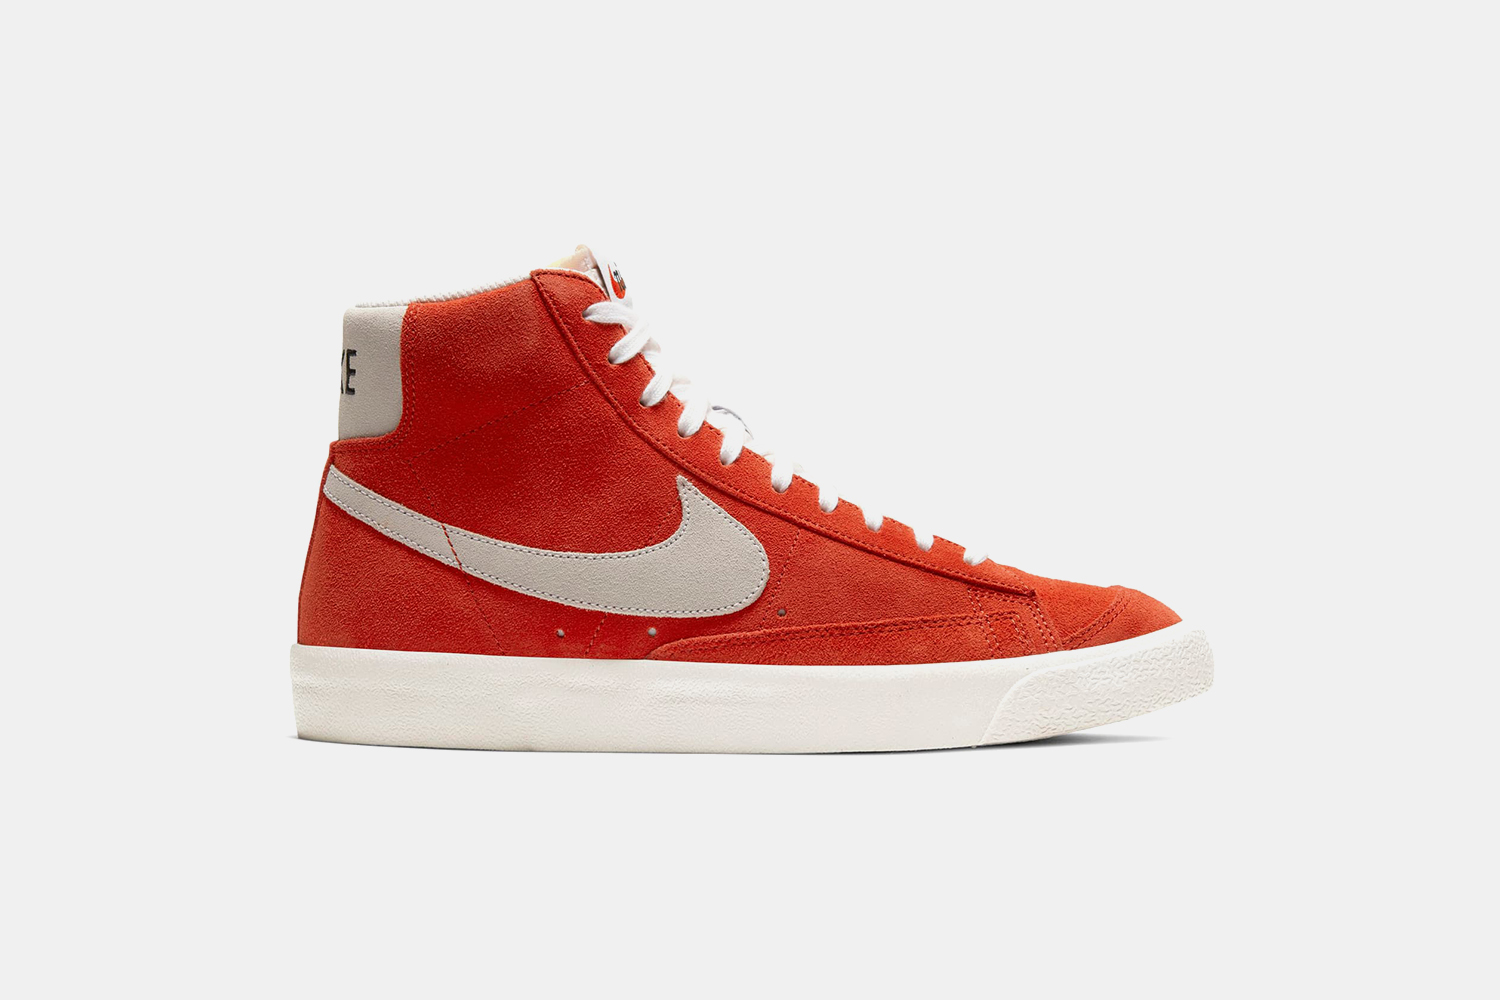 Deal: This Rarely On-Sale Nike Sneaker Is 40% Off - InsideHook